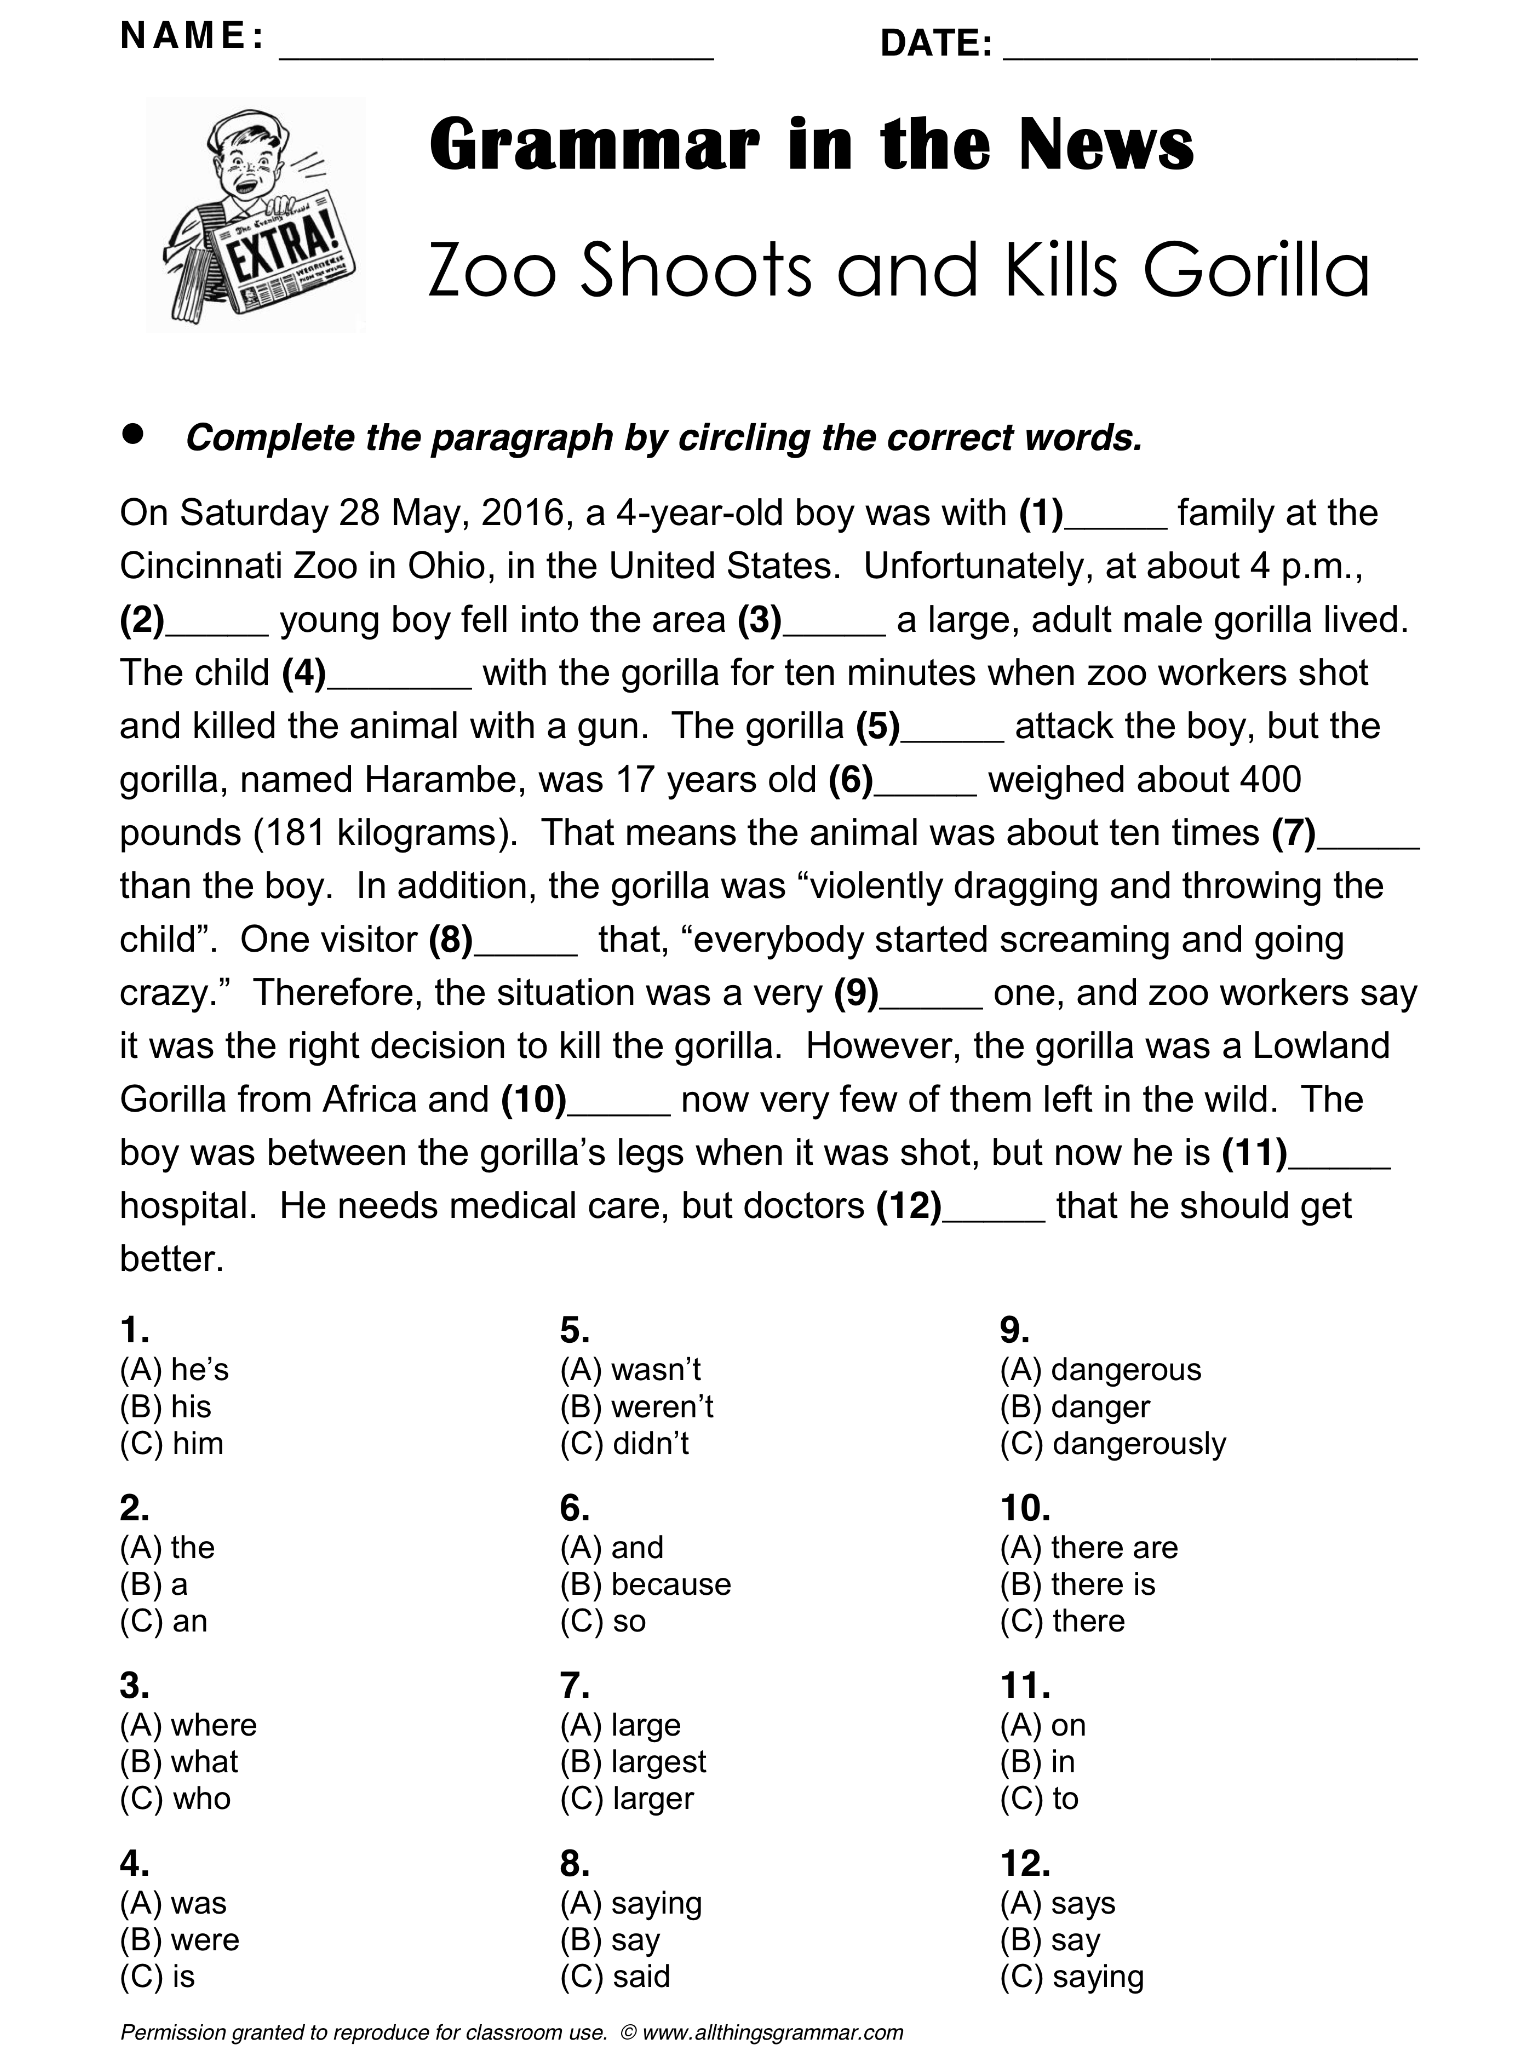 English Grammar In The News Zoo Shoots And Kills Gorilla Adjectives Articles Comparative Adjective English Grammar English Teaching Resources Learn English [ 2048 x 1536 Pixel ]